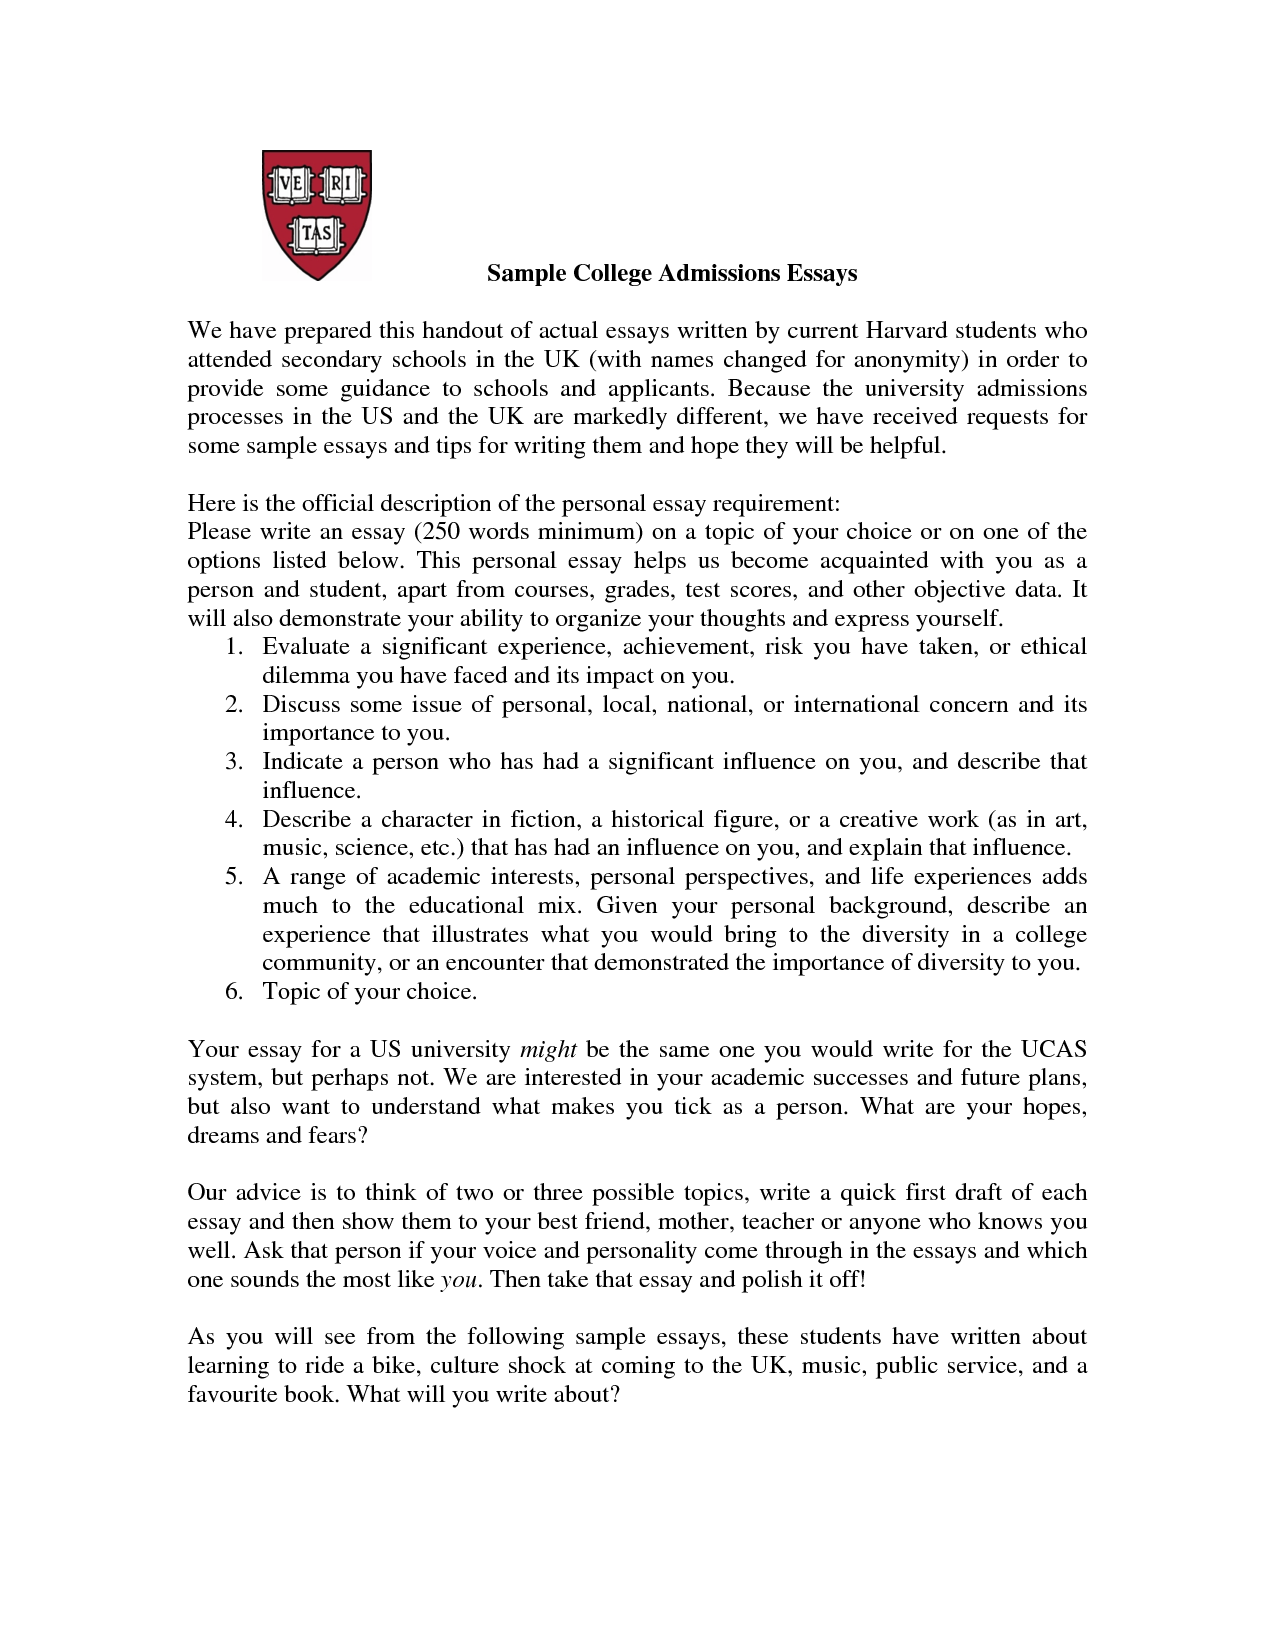 013 Dpy4cpaqnd Essay Example Common App Best Essays Application Examples Harvard Prompts 2014-15 Full